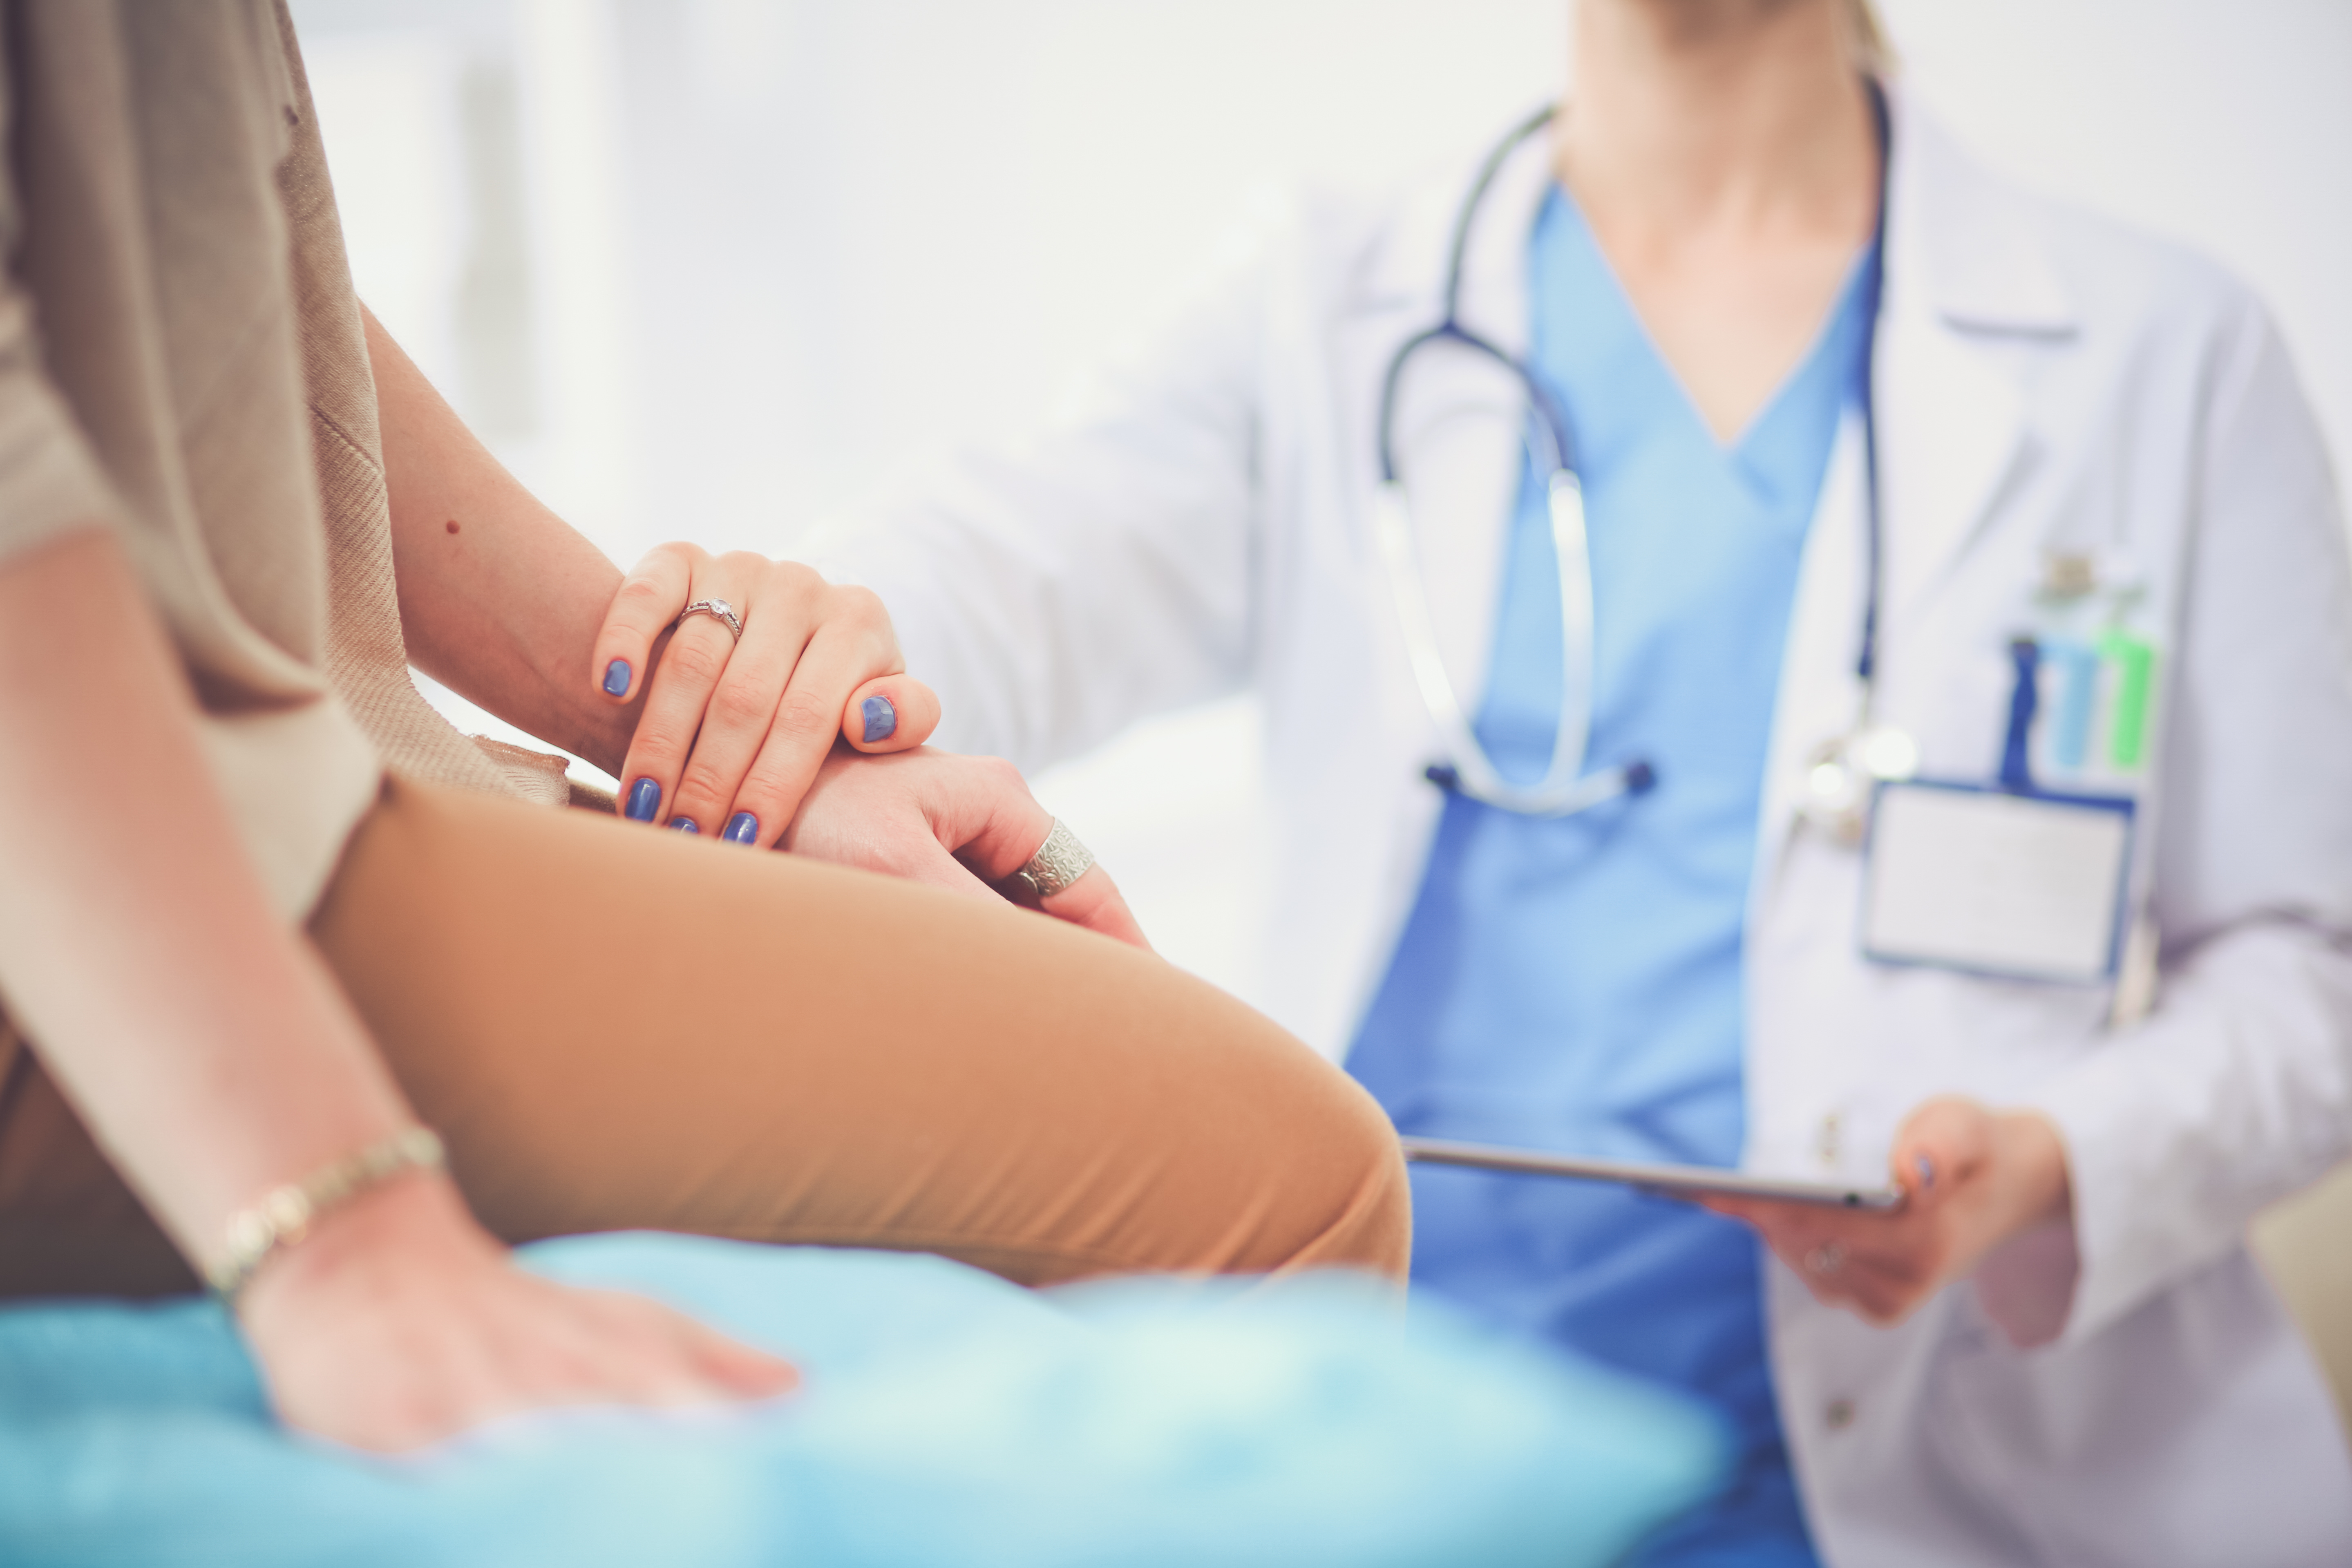 Why You Should Consider Seeing an Osteopathic Doctor